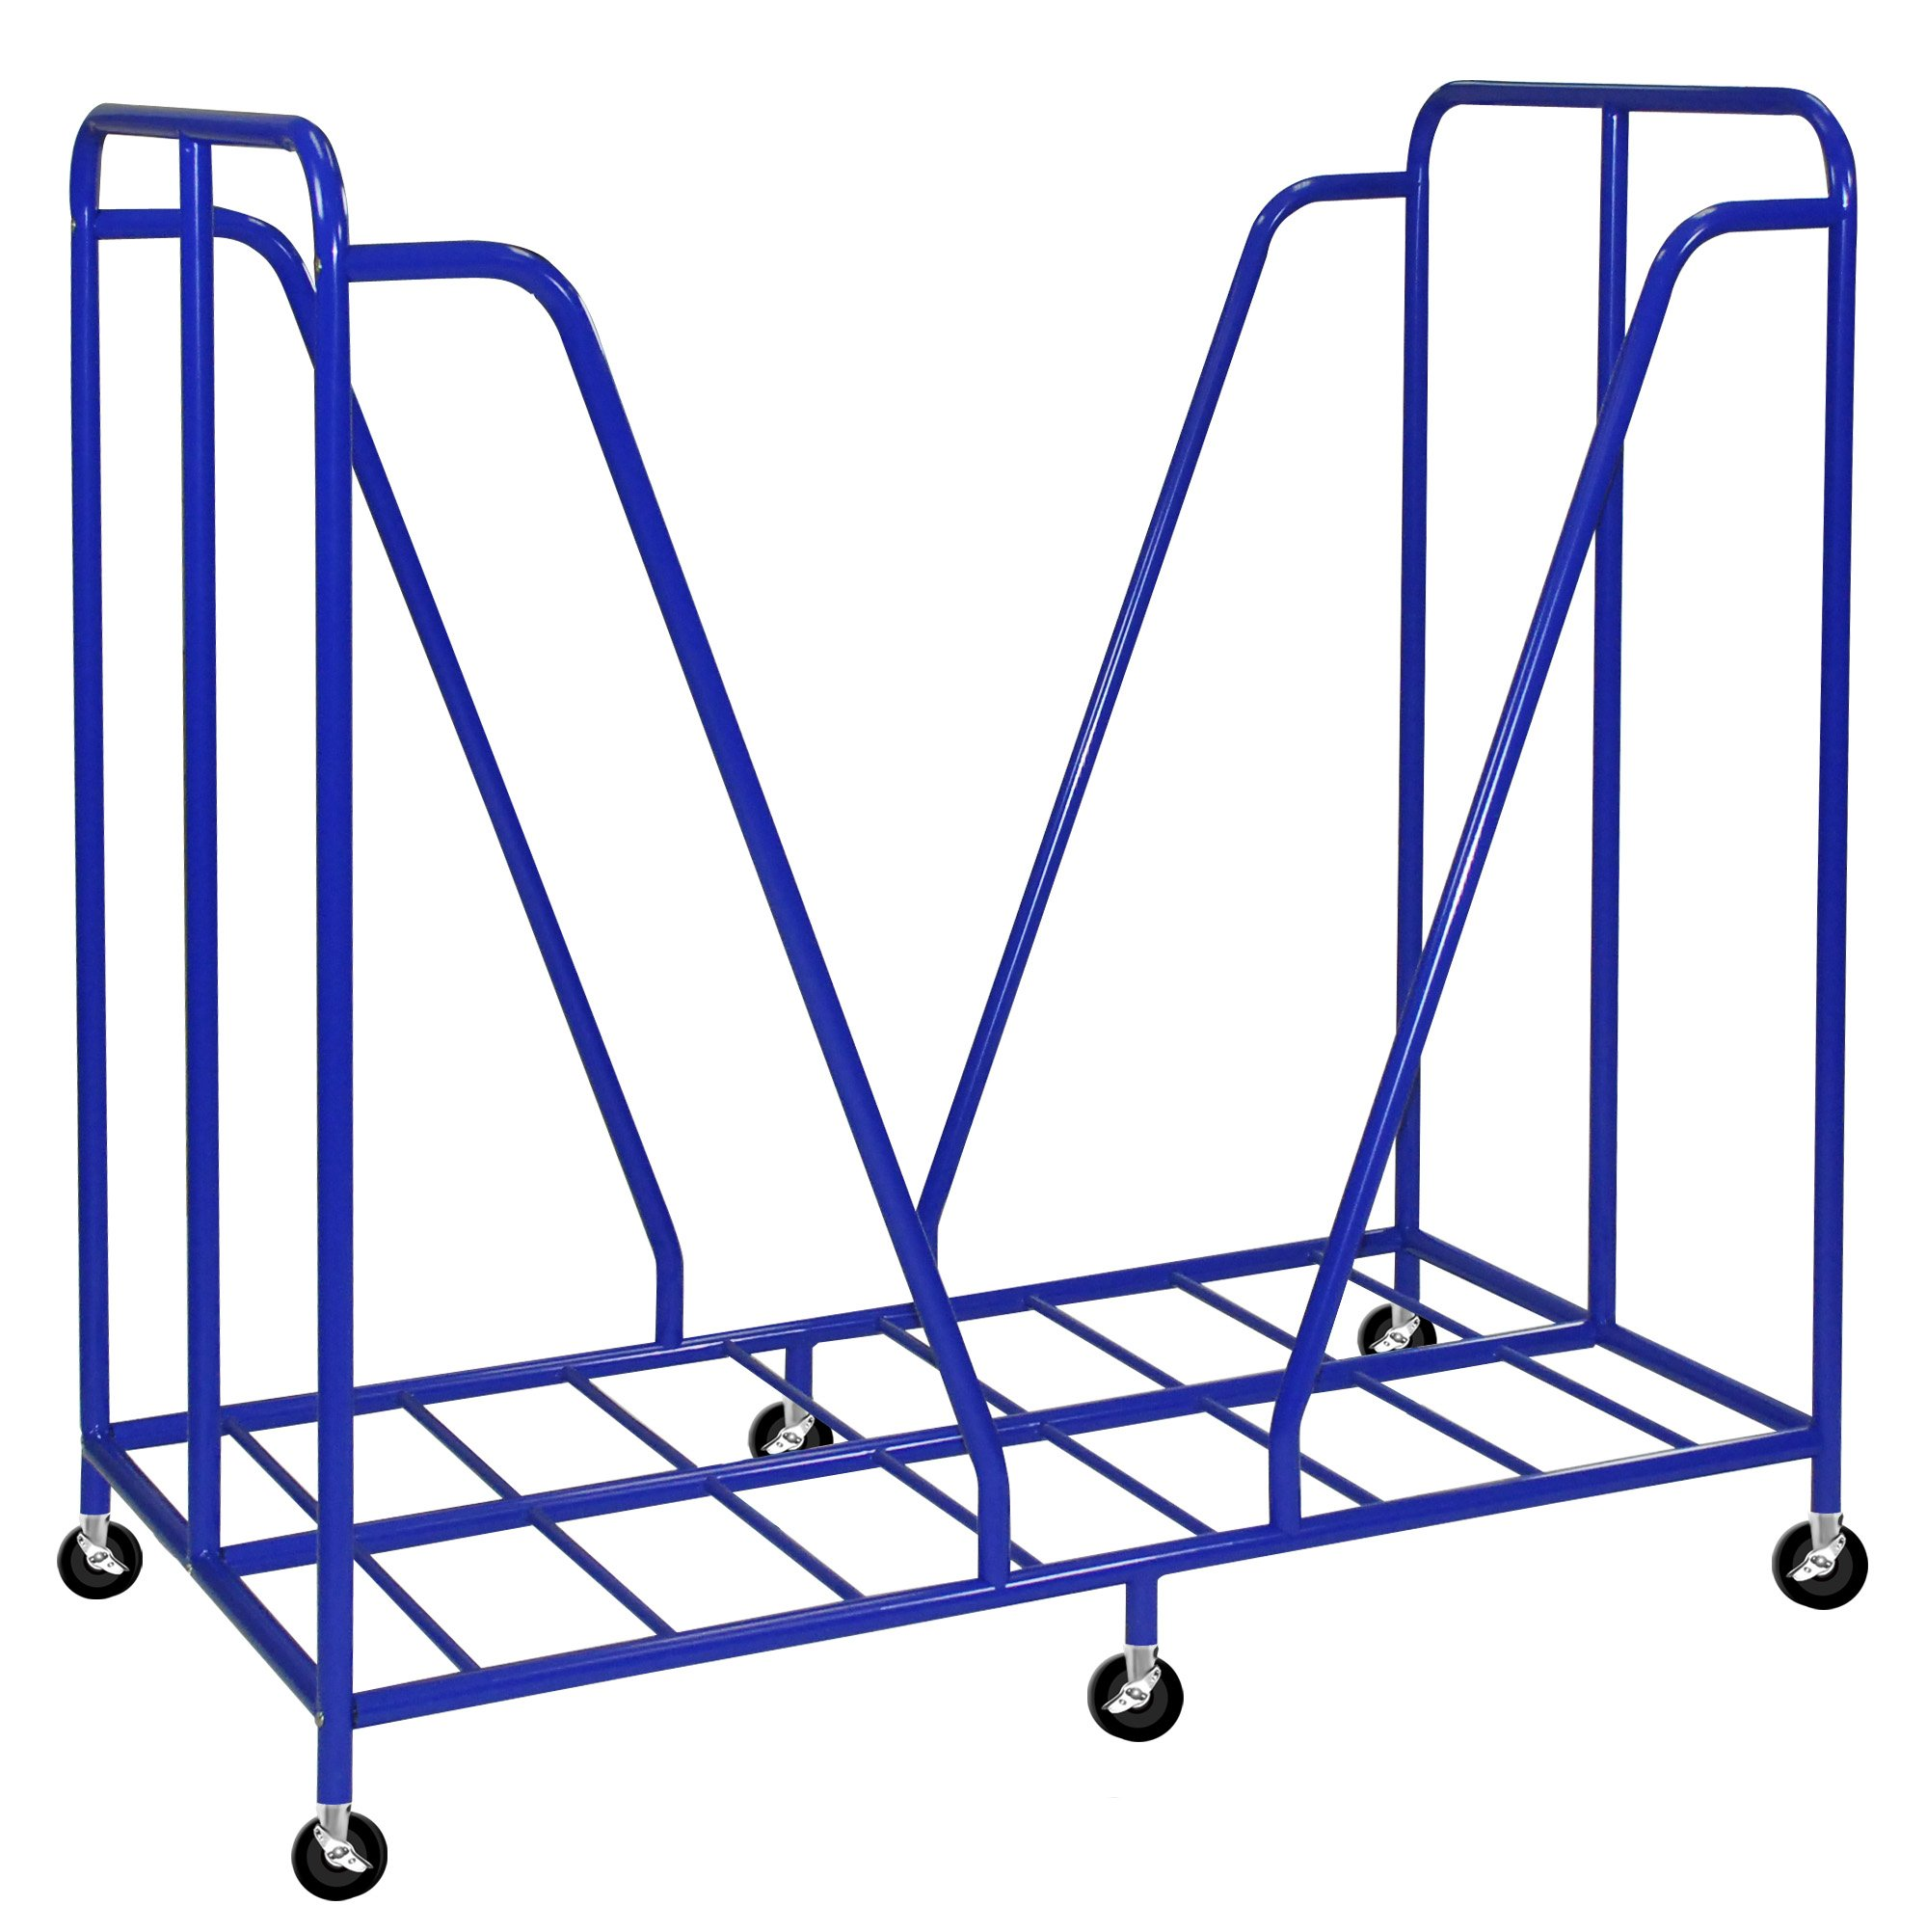 ECR4Kids Mobile Rest Mat Storage Trolley with Casters, Blue by ECR4Kids